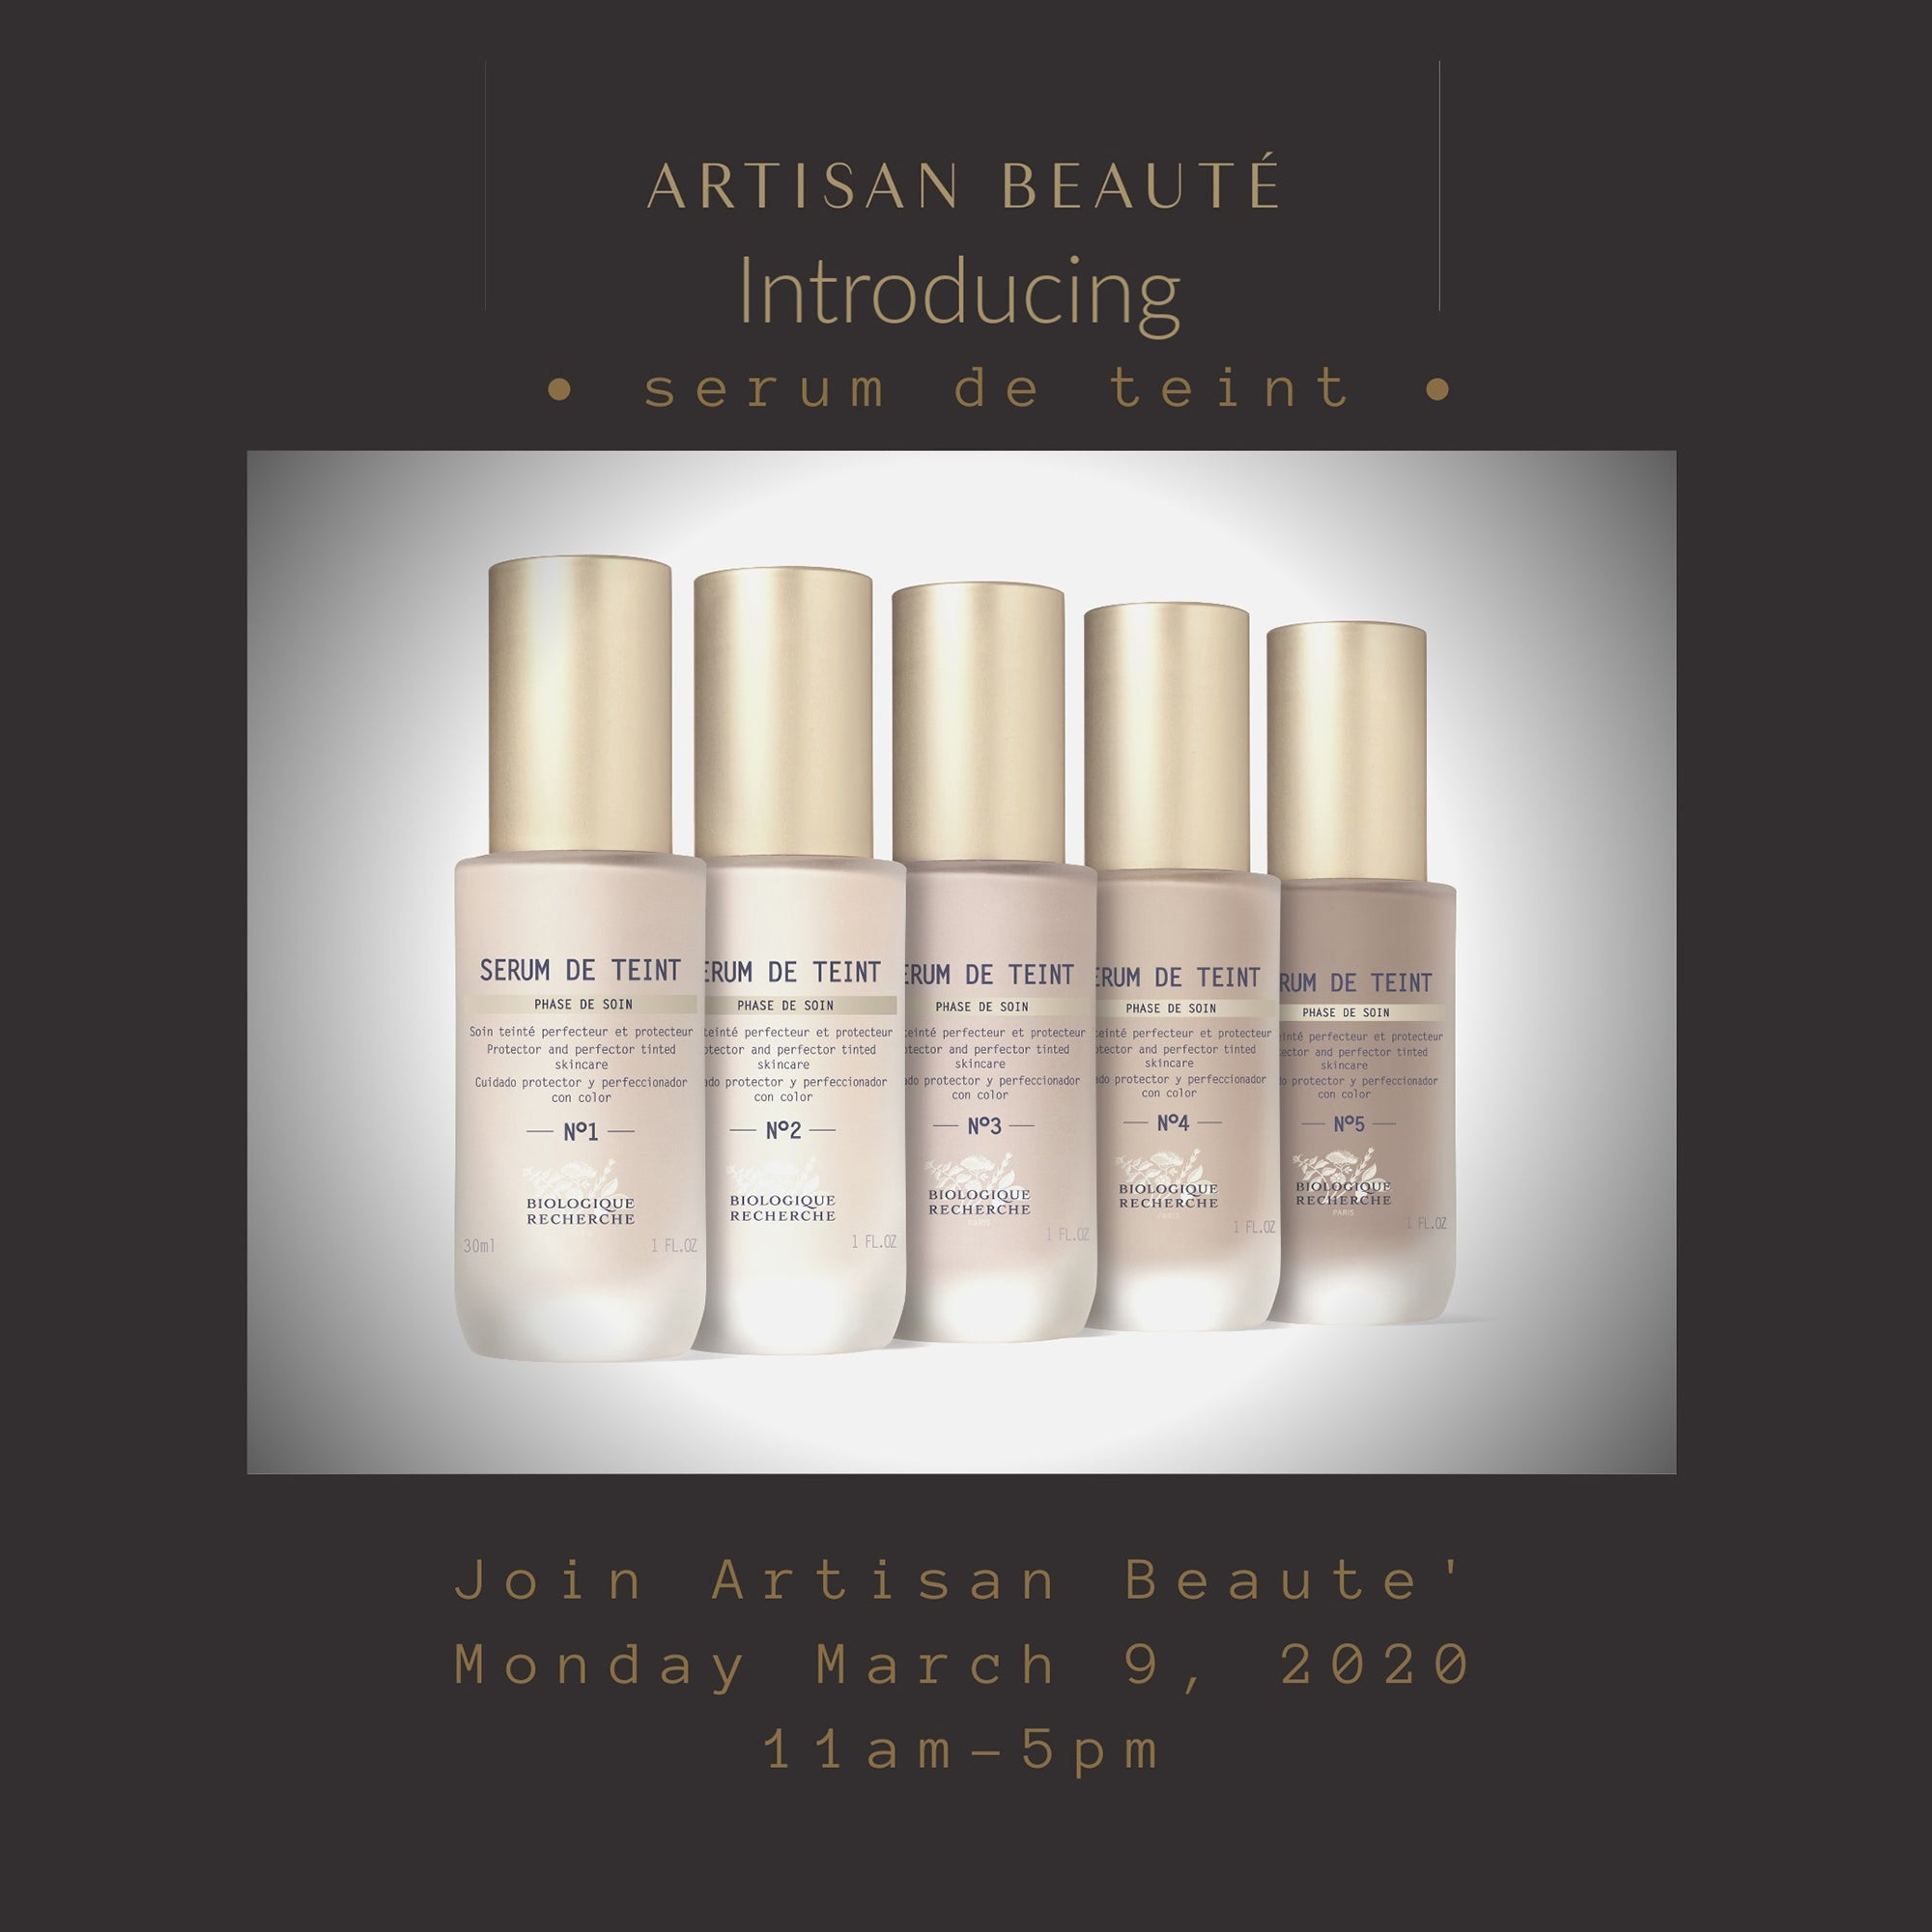 Events at Artisan Beaute